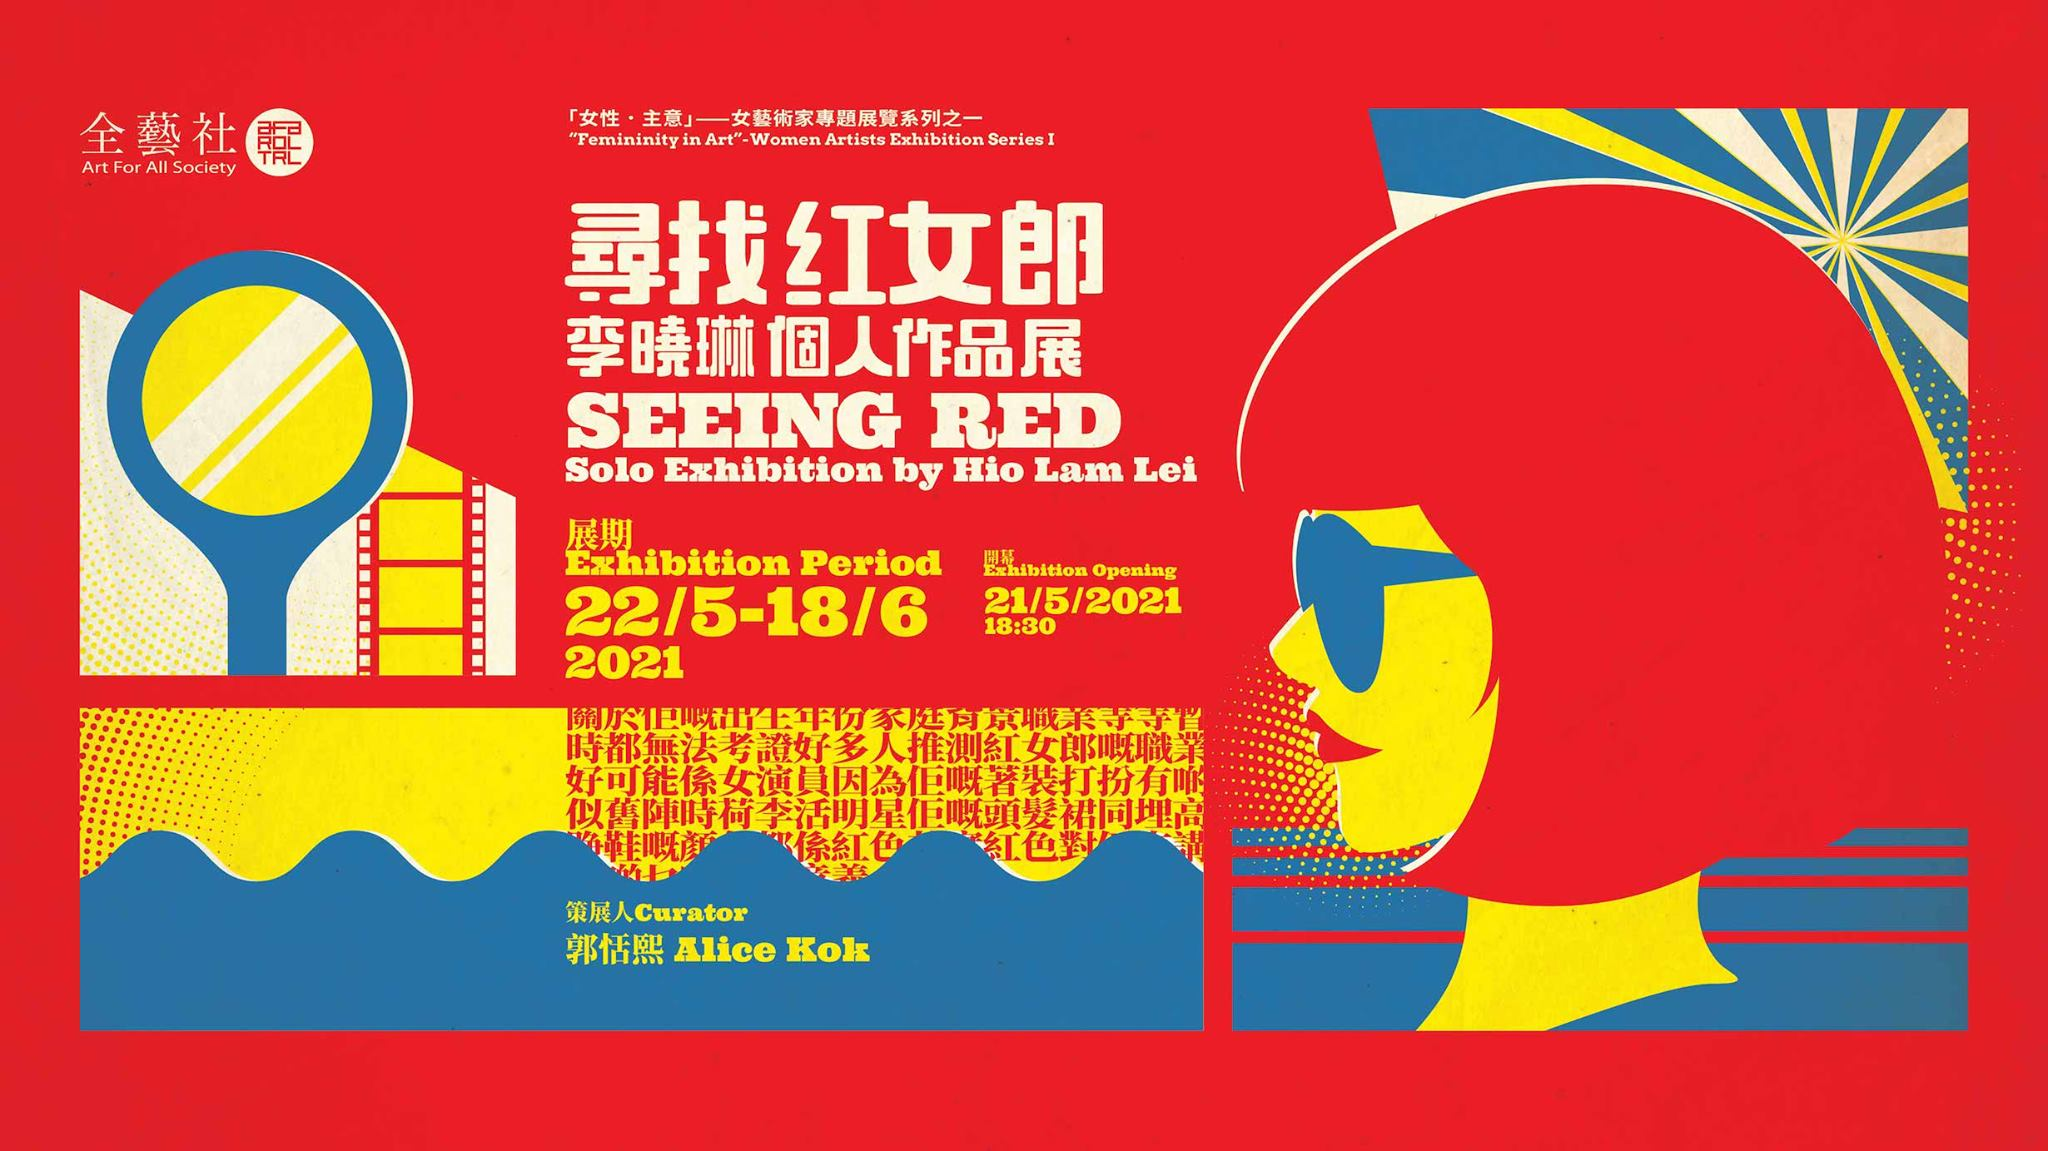 Seeing Red Solo Exhibition at AFA Poster